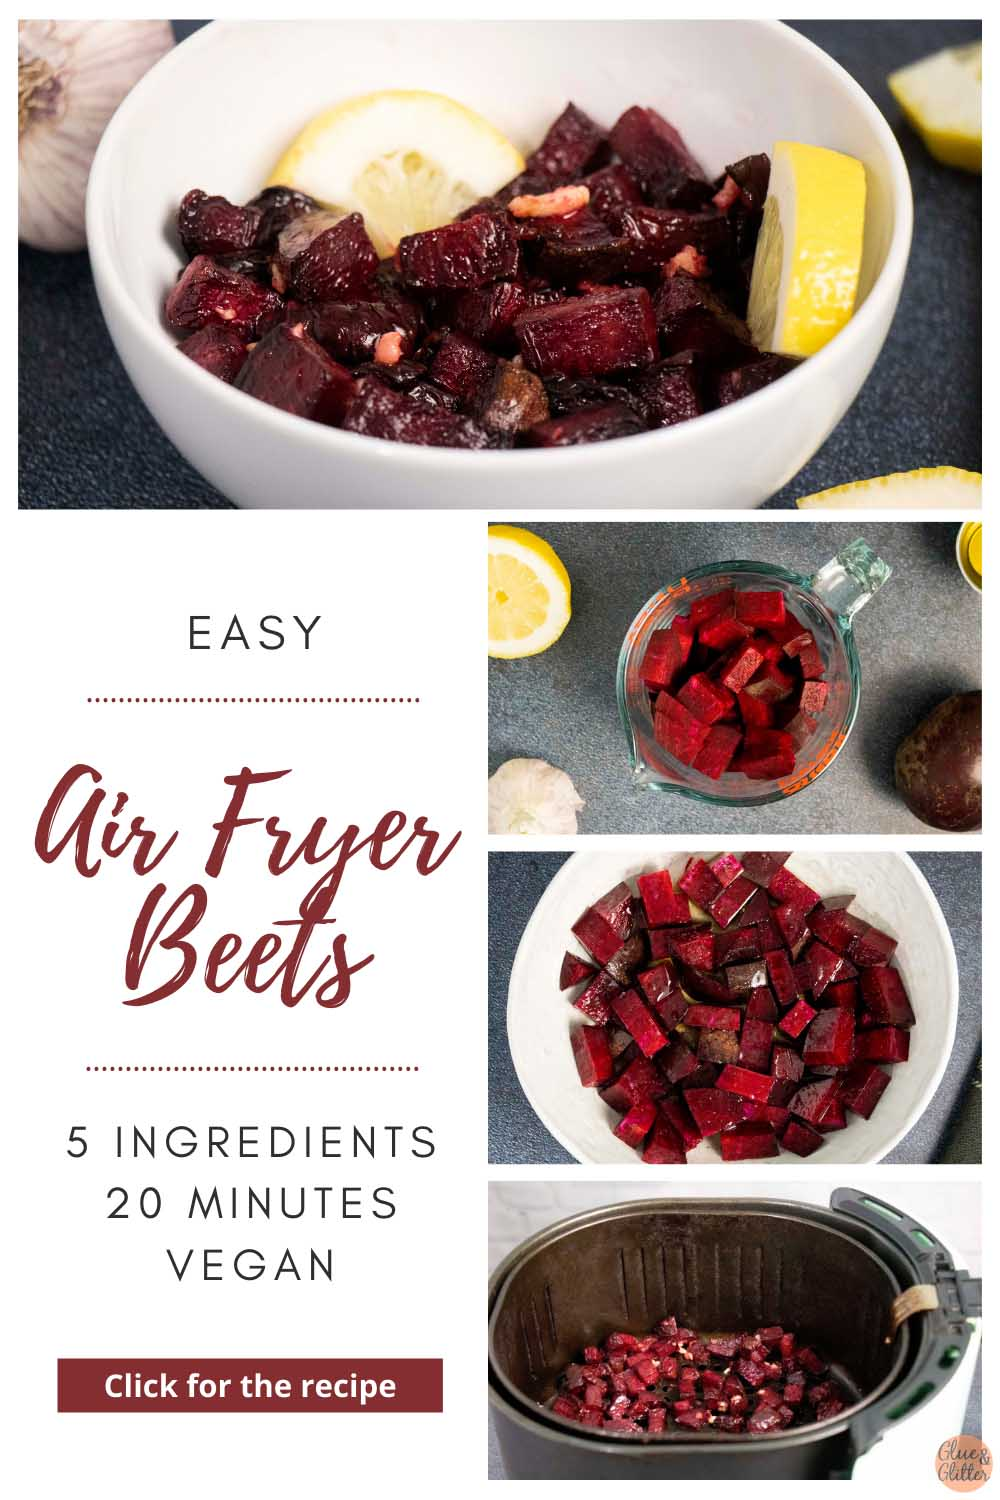 image collage showing finished air fryer beets, diced beets in a measuring bowl, beets in a mixing bowl, and beets in the air fryer basket